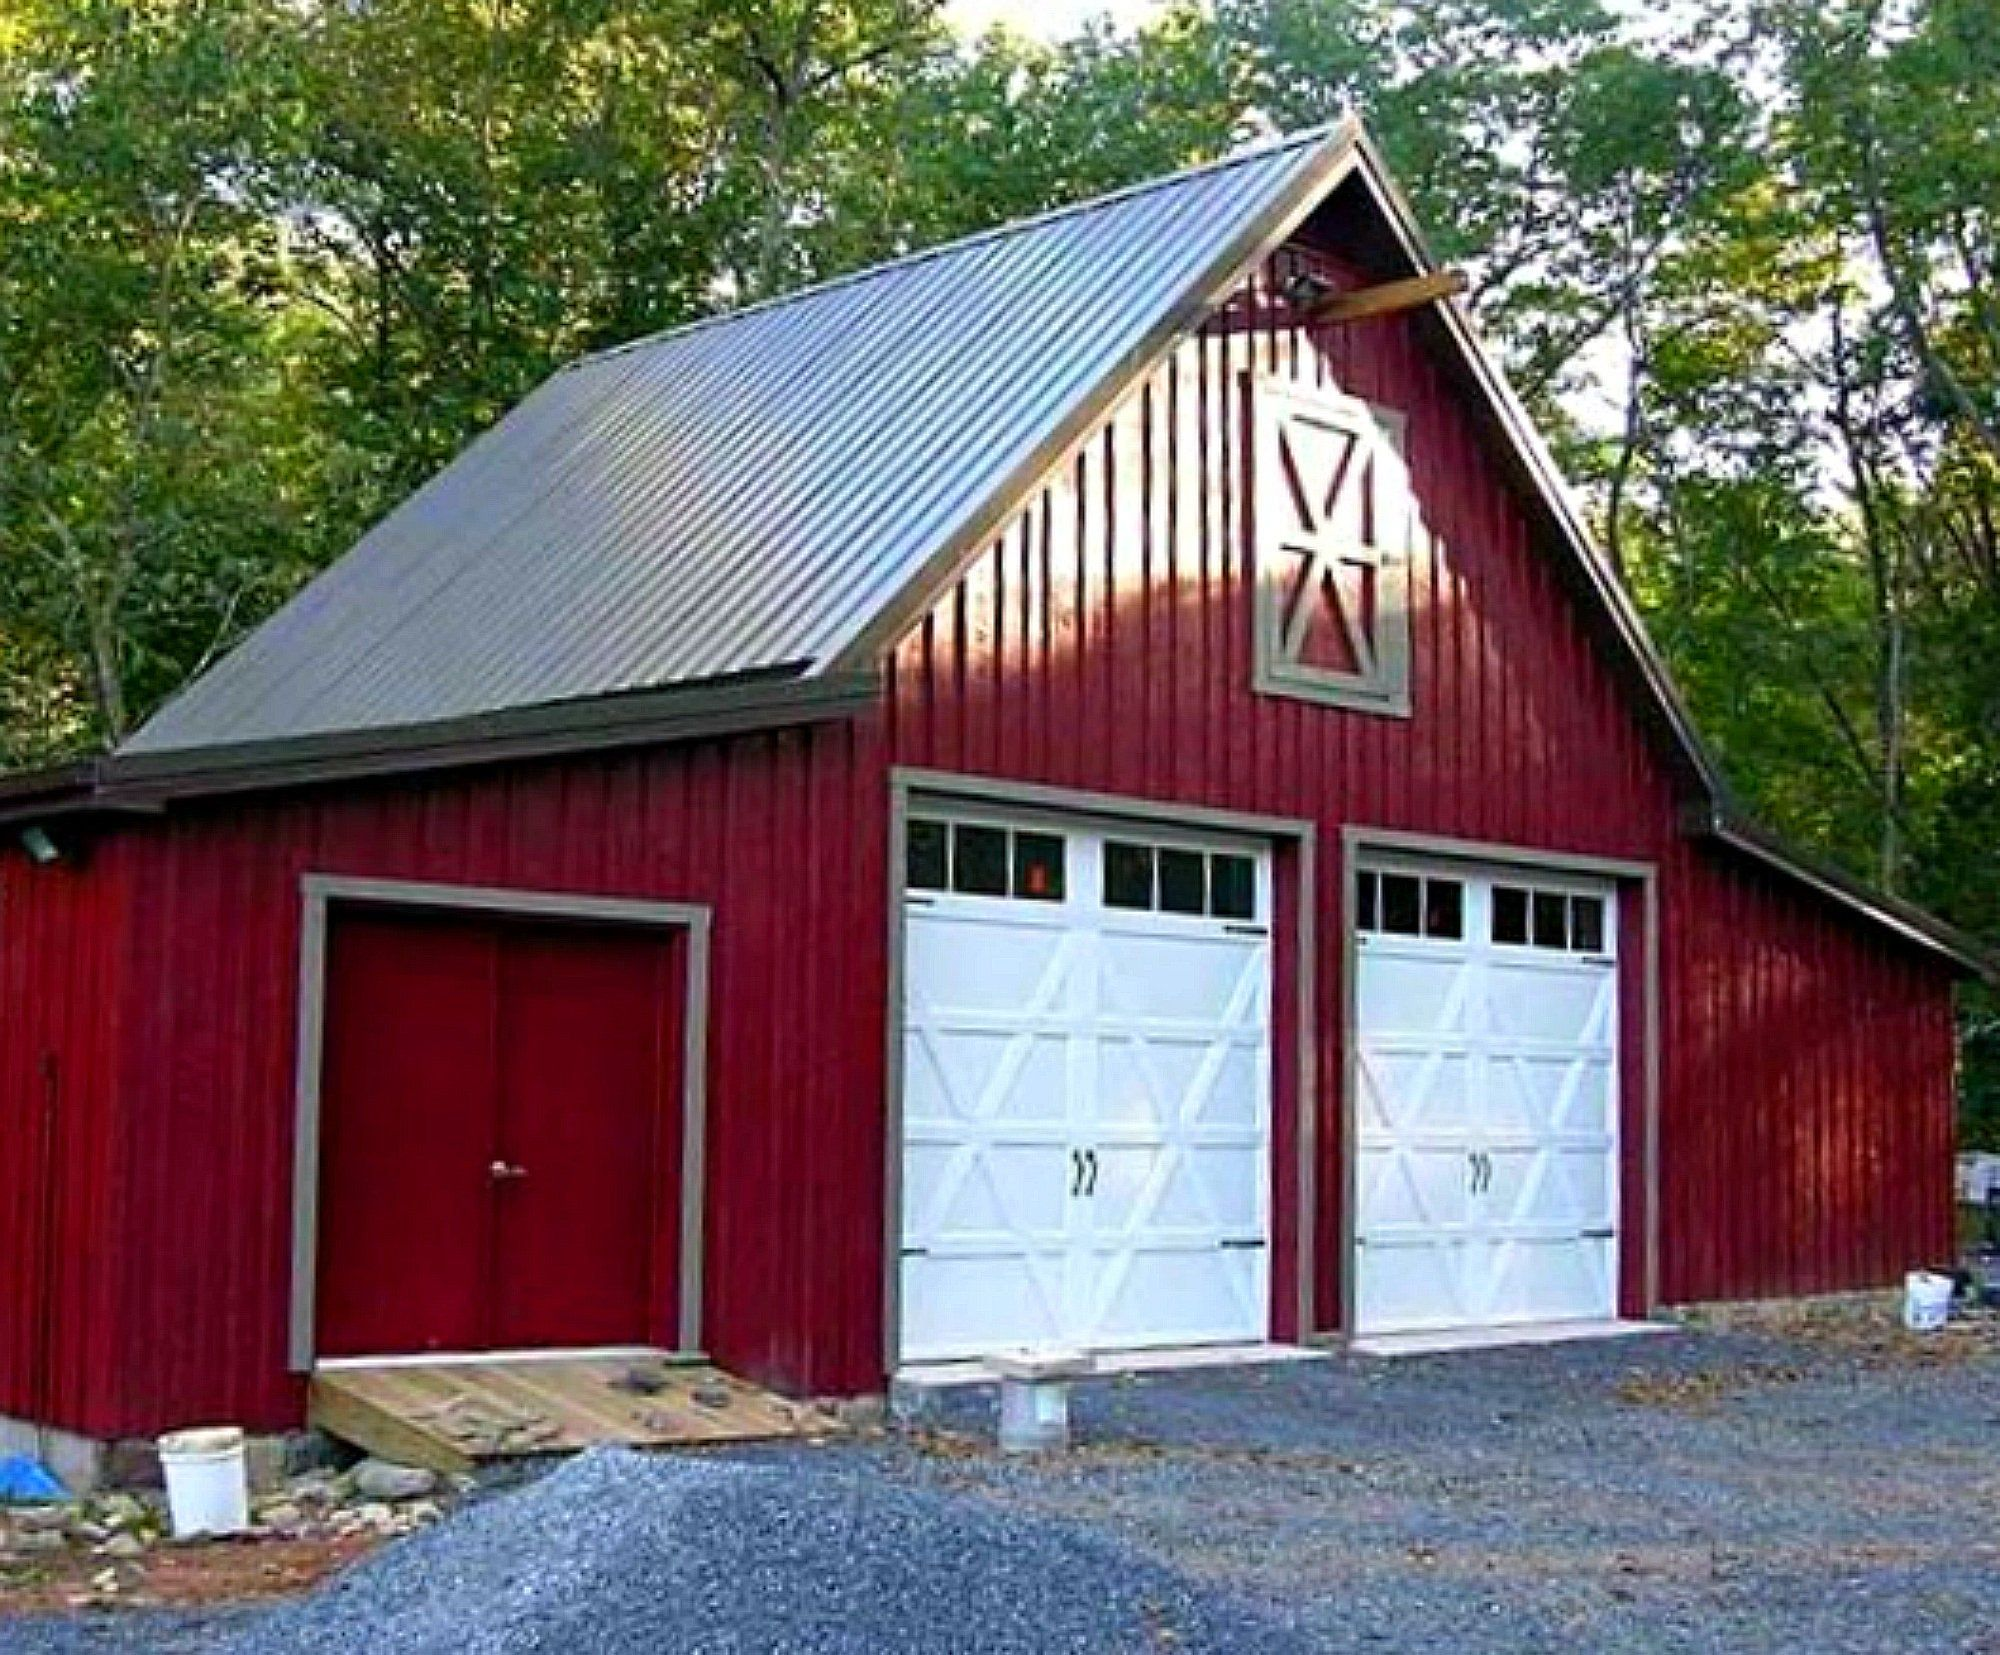 31 Car Barn Designs Thirty One Optional Layouts Complete Etsy In 2020 Barn Construction Pole Barn Construction Barn Plans